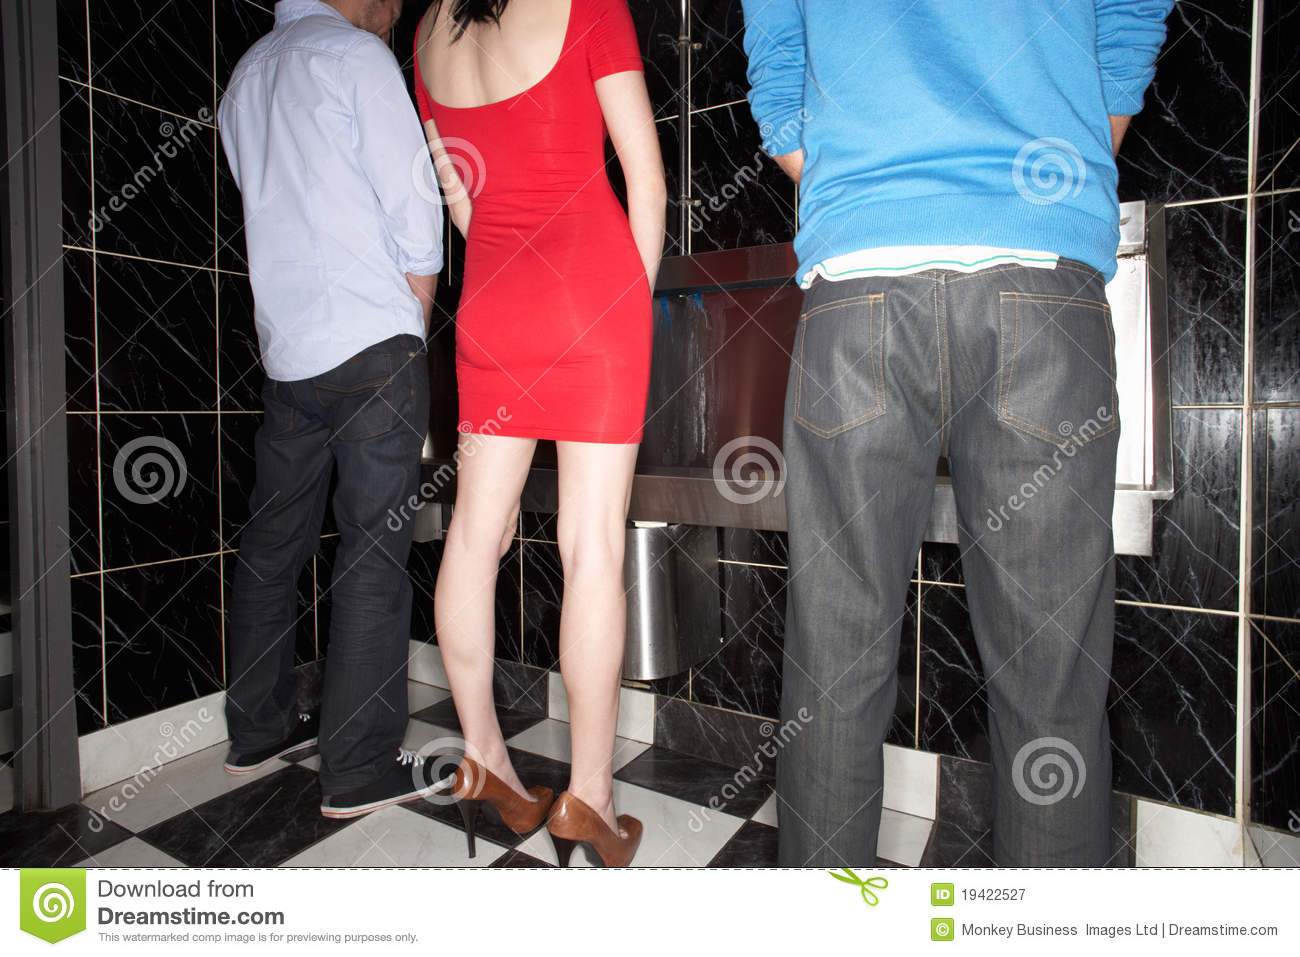 Woman And Two Men Standing At Mens Urinal Stock Image